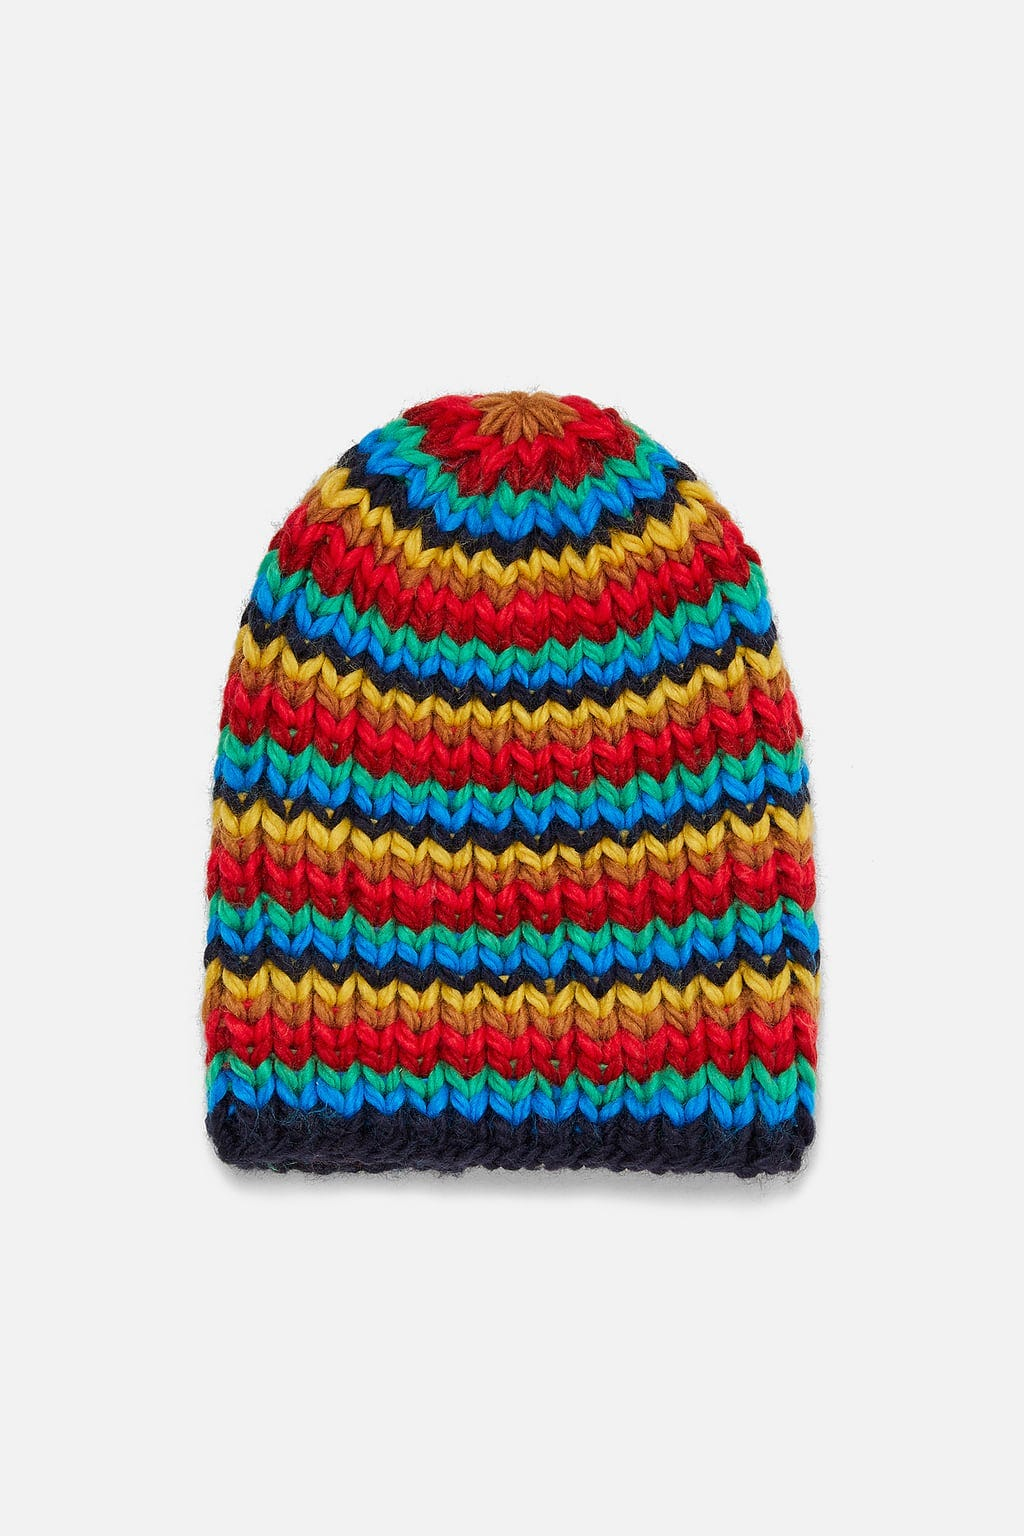 4deb52b8684502 20 Hats To See You Through Winter In Style